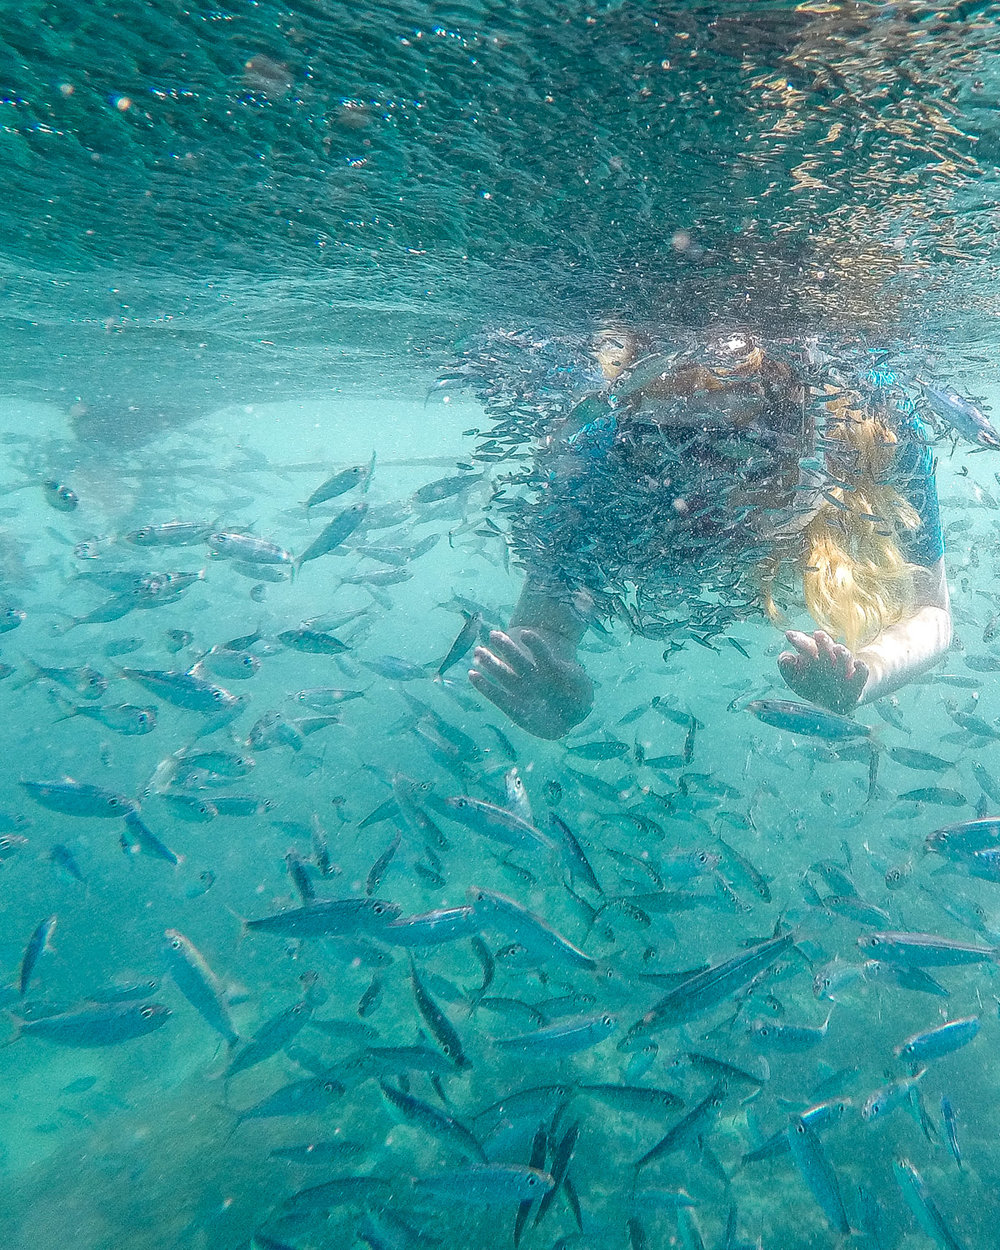 The sardine run off the coast by Moalboal